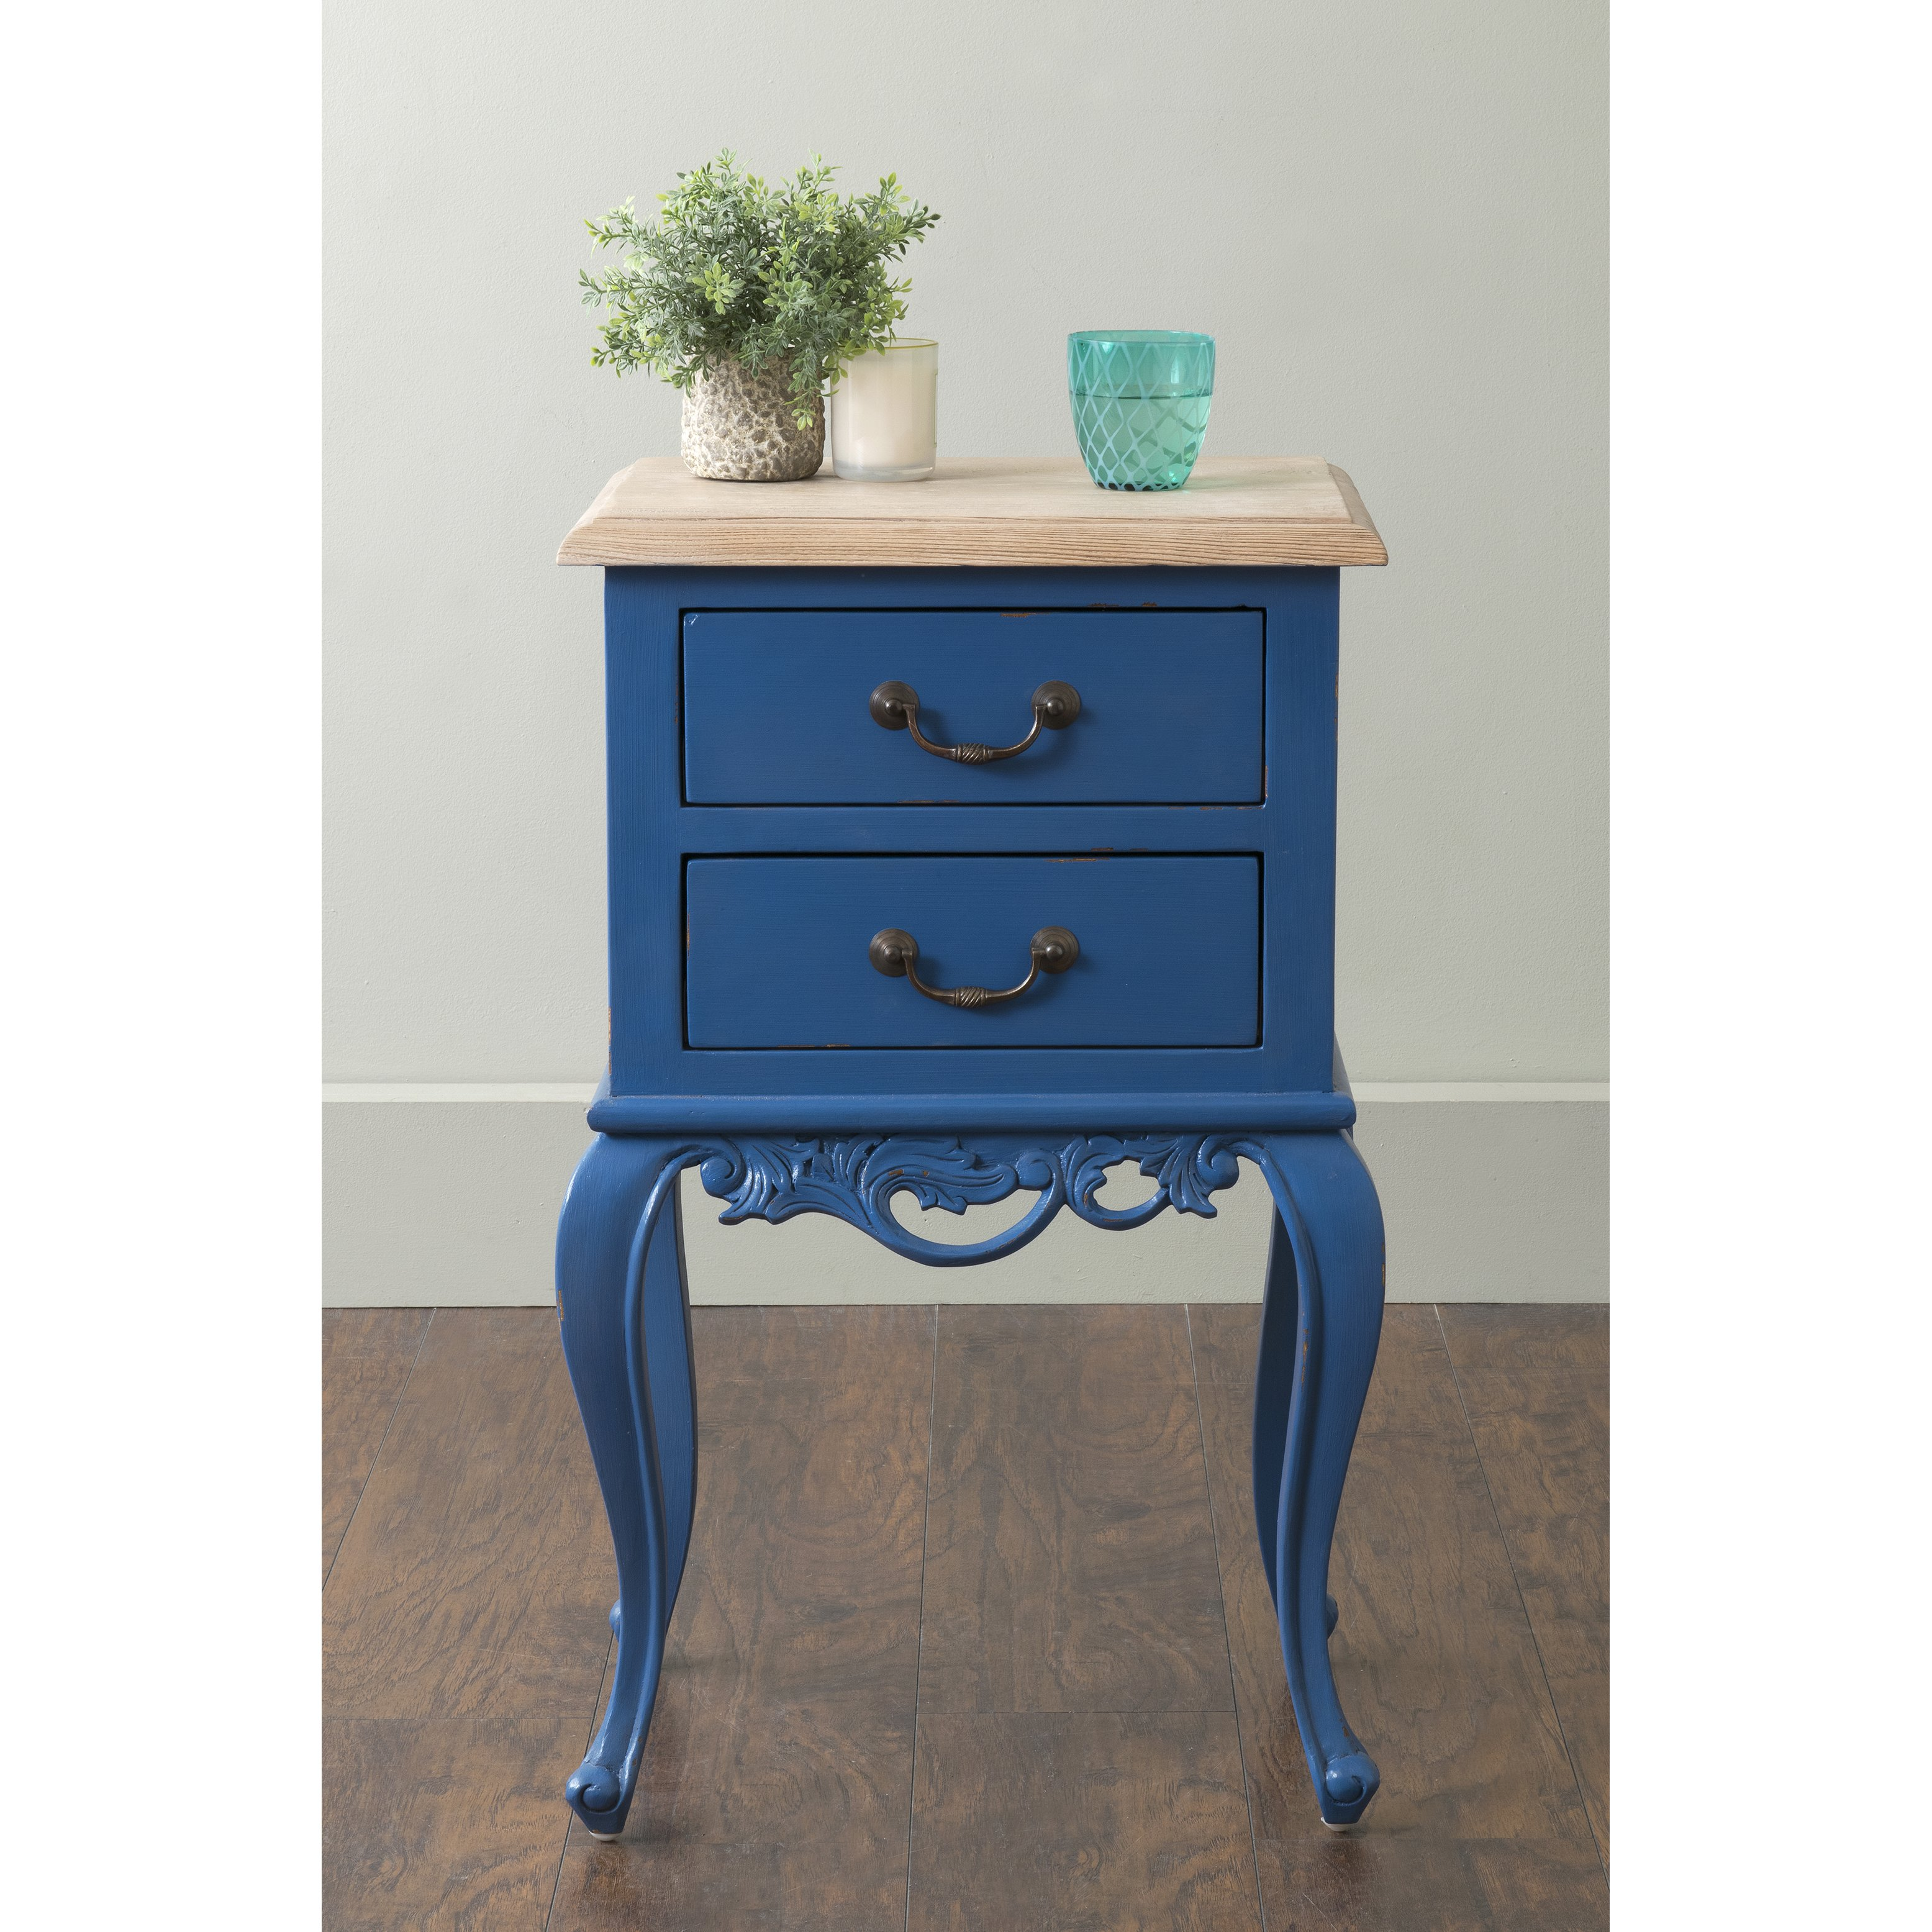 east main herrin blue square traditional teakwood accent mains table teal free shipping today counter height dining chairs small antique marble top demilune console tall with